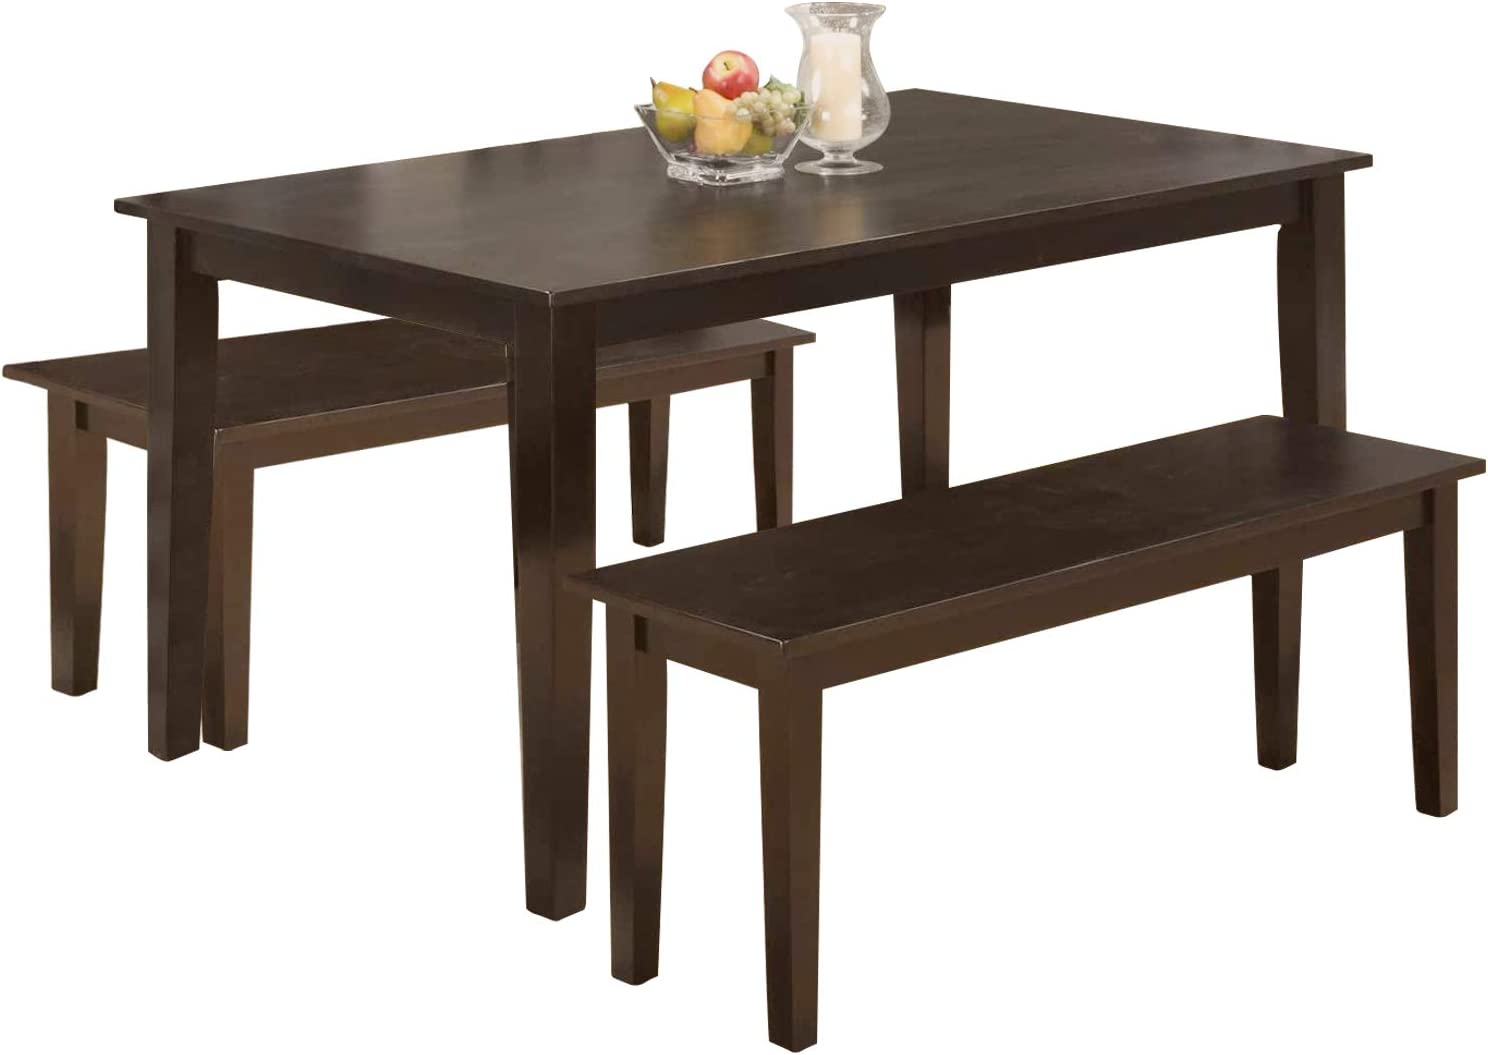 Dining Table Set Dining Table Kitchen Table and Bench for 3 Dining Room  Table Set for Small Spaces Table with Chairs Home Furniture Rectangular  Modern